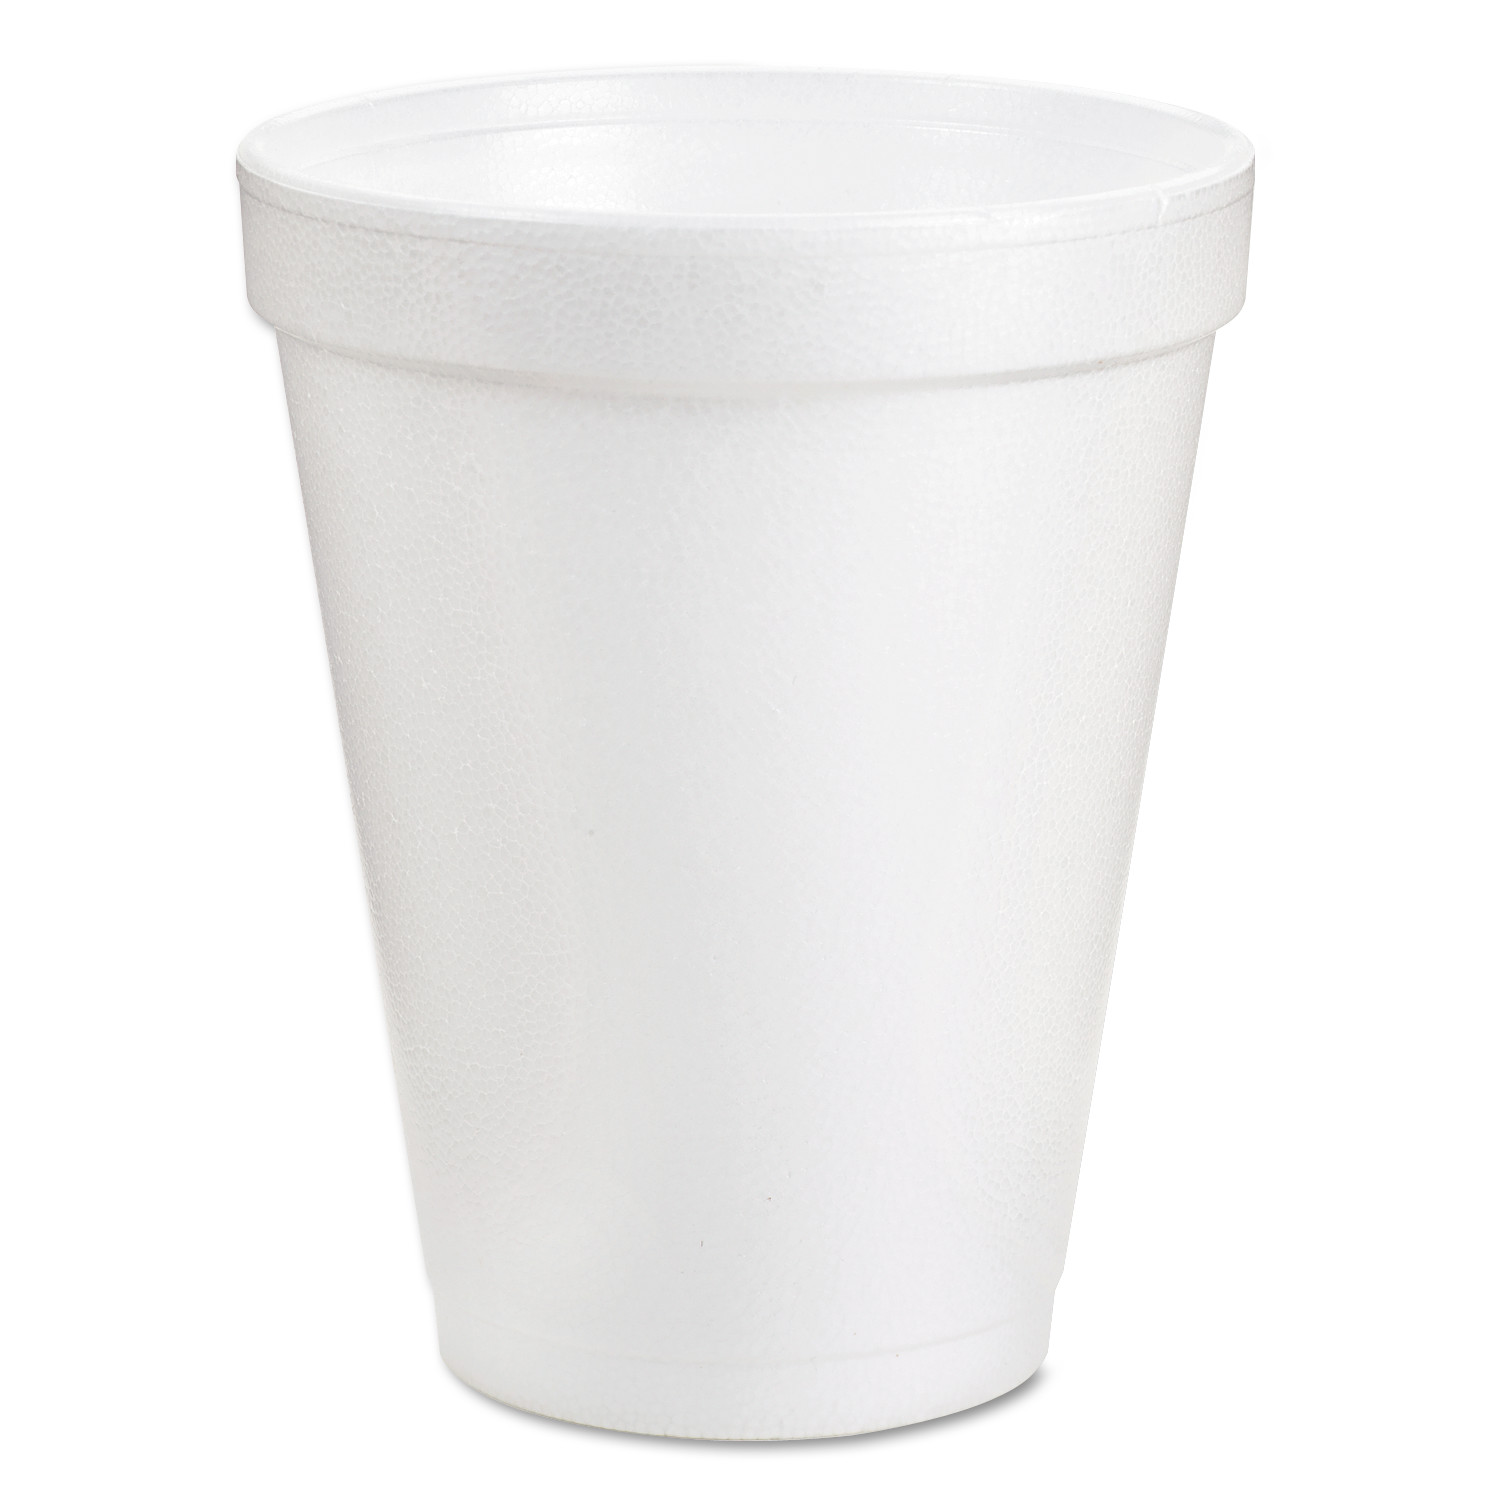 Dart Foam Drink Cups, 6oz, White, 25/Bag, 40 Bags/Carton